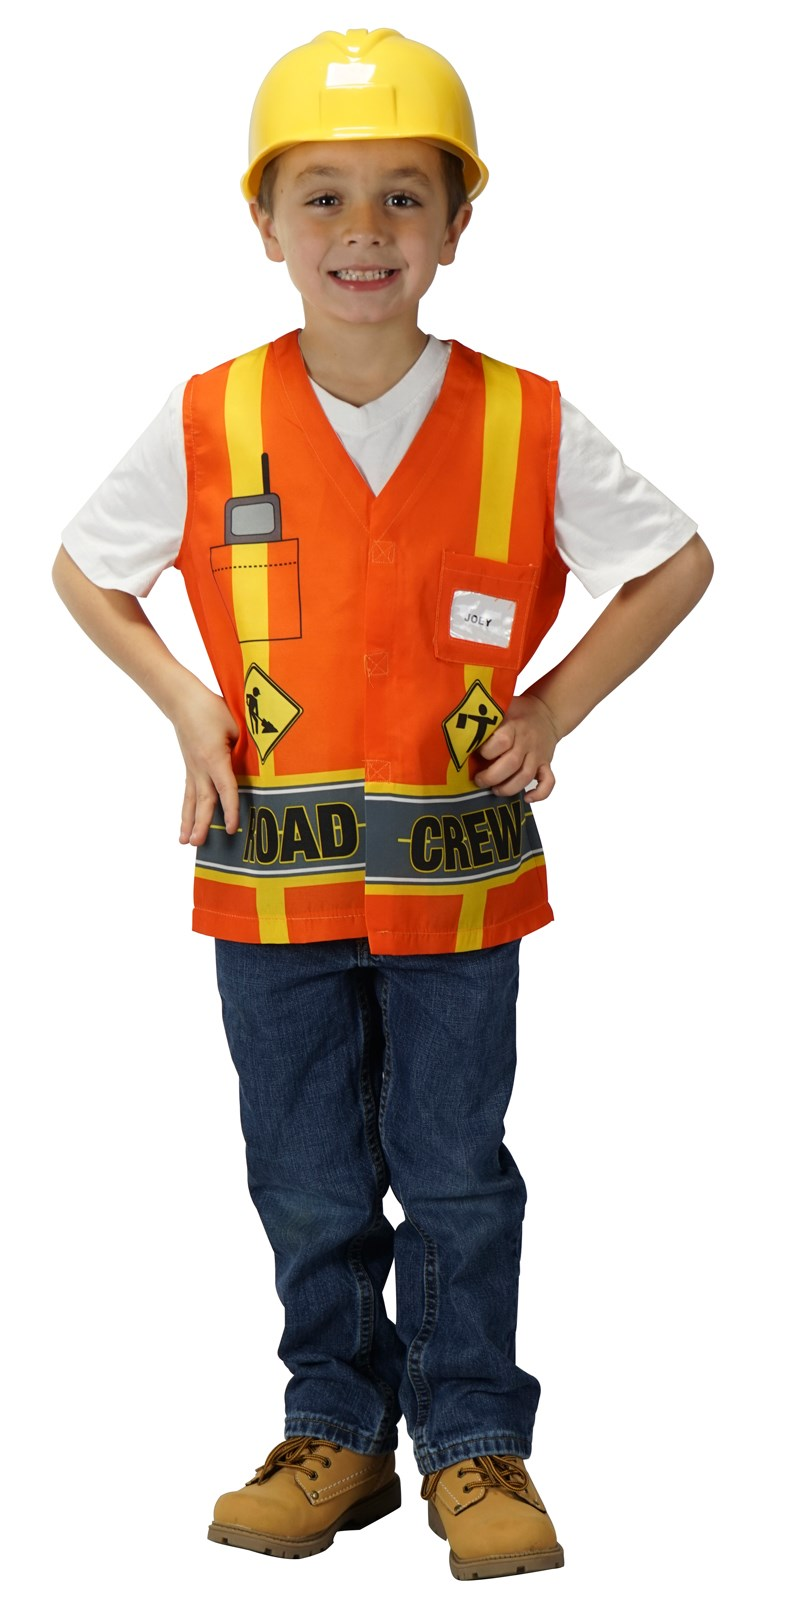 My First Career Gear Road Crew Toddler Costume